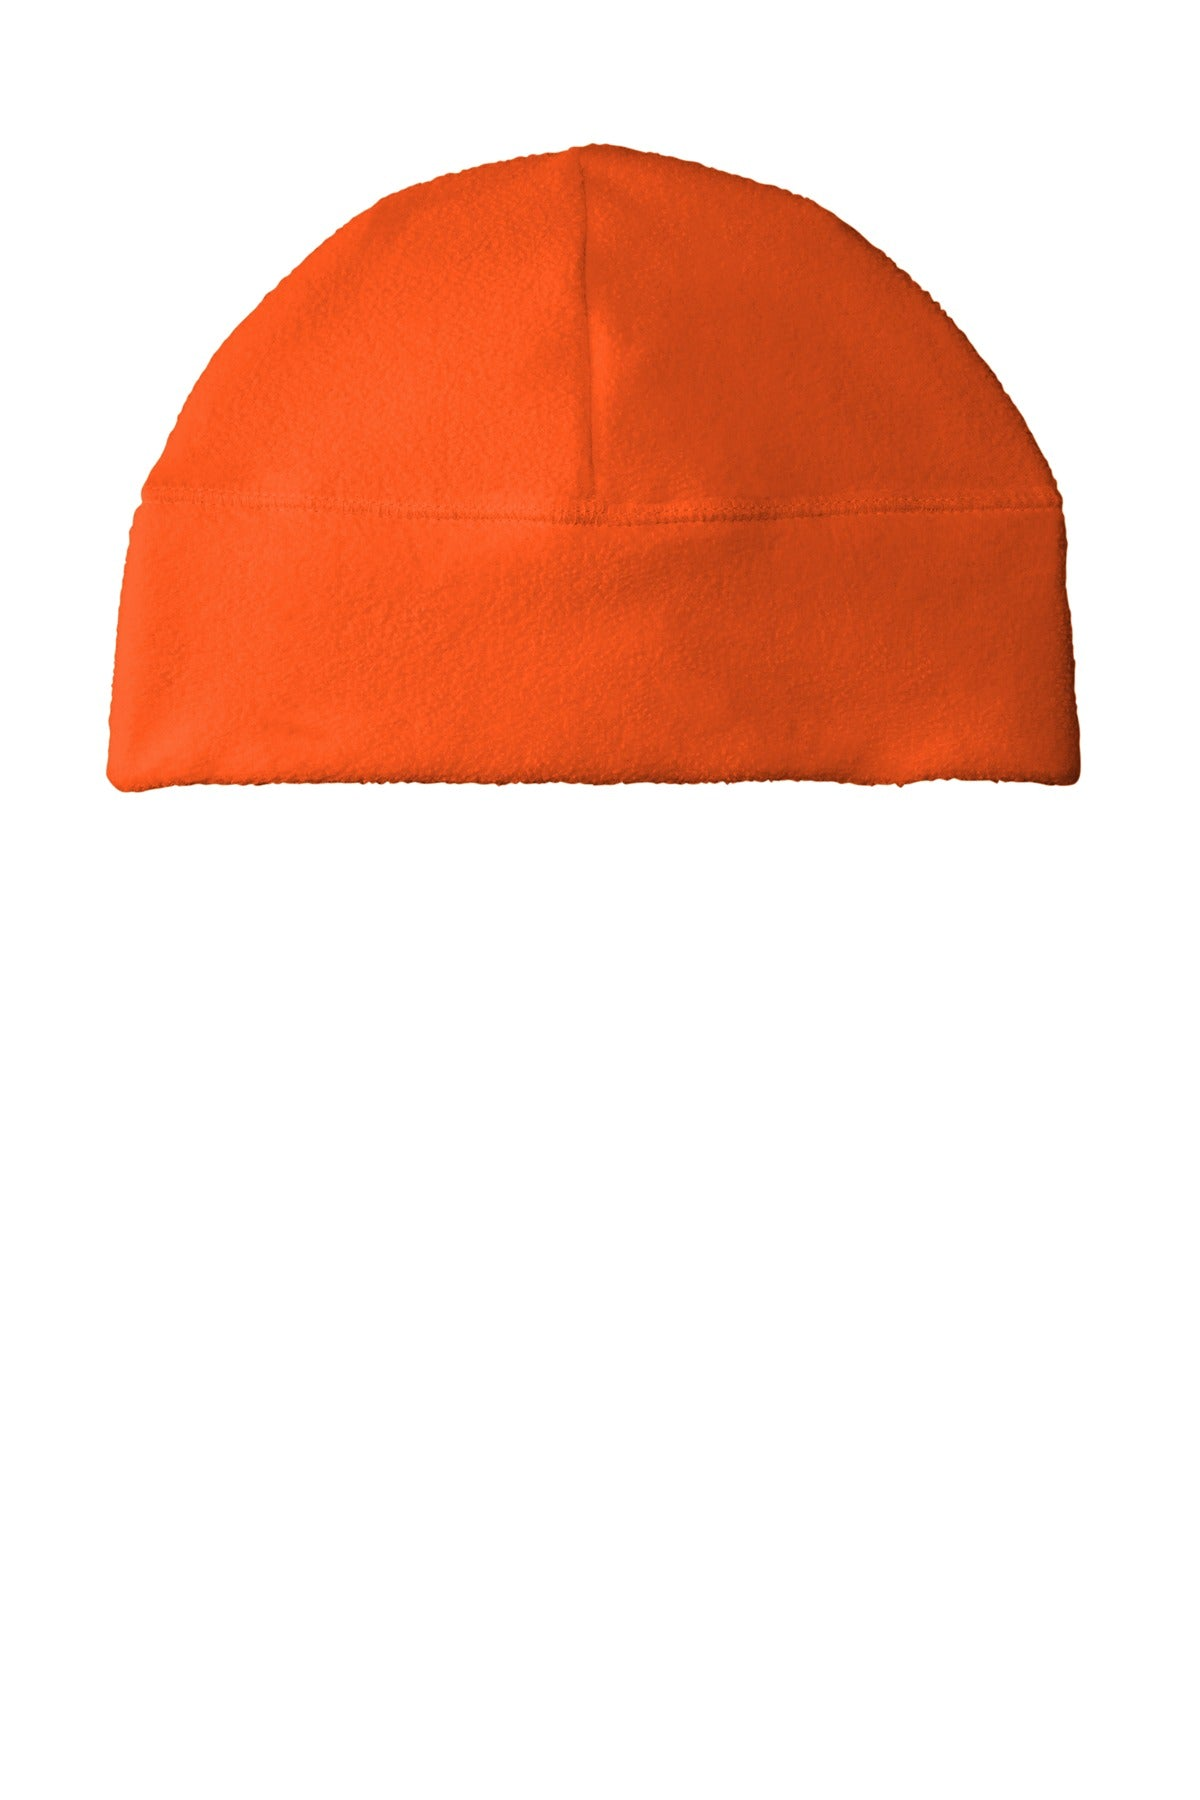 CornerStone ® Enhanced Visibility Fleece Beanie CS803